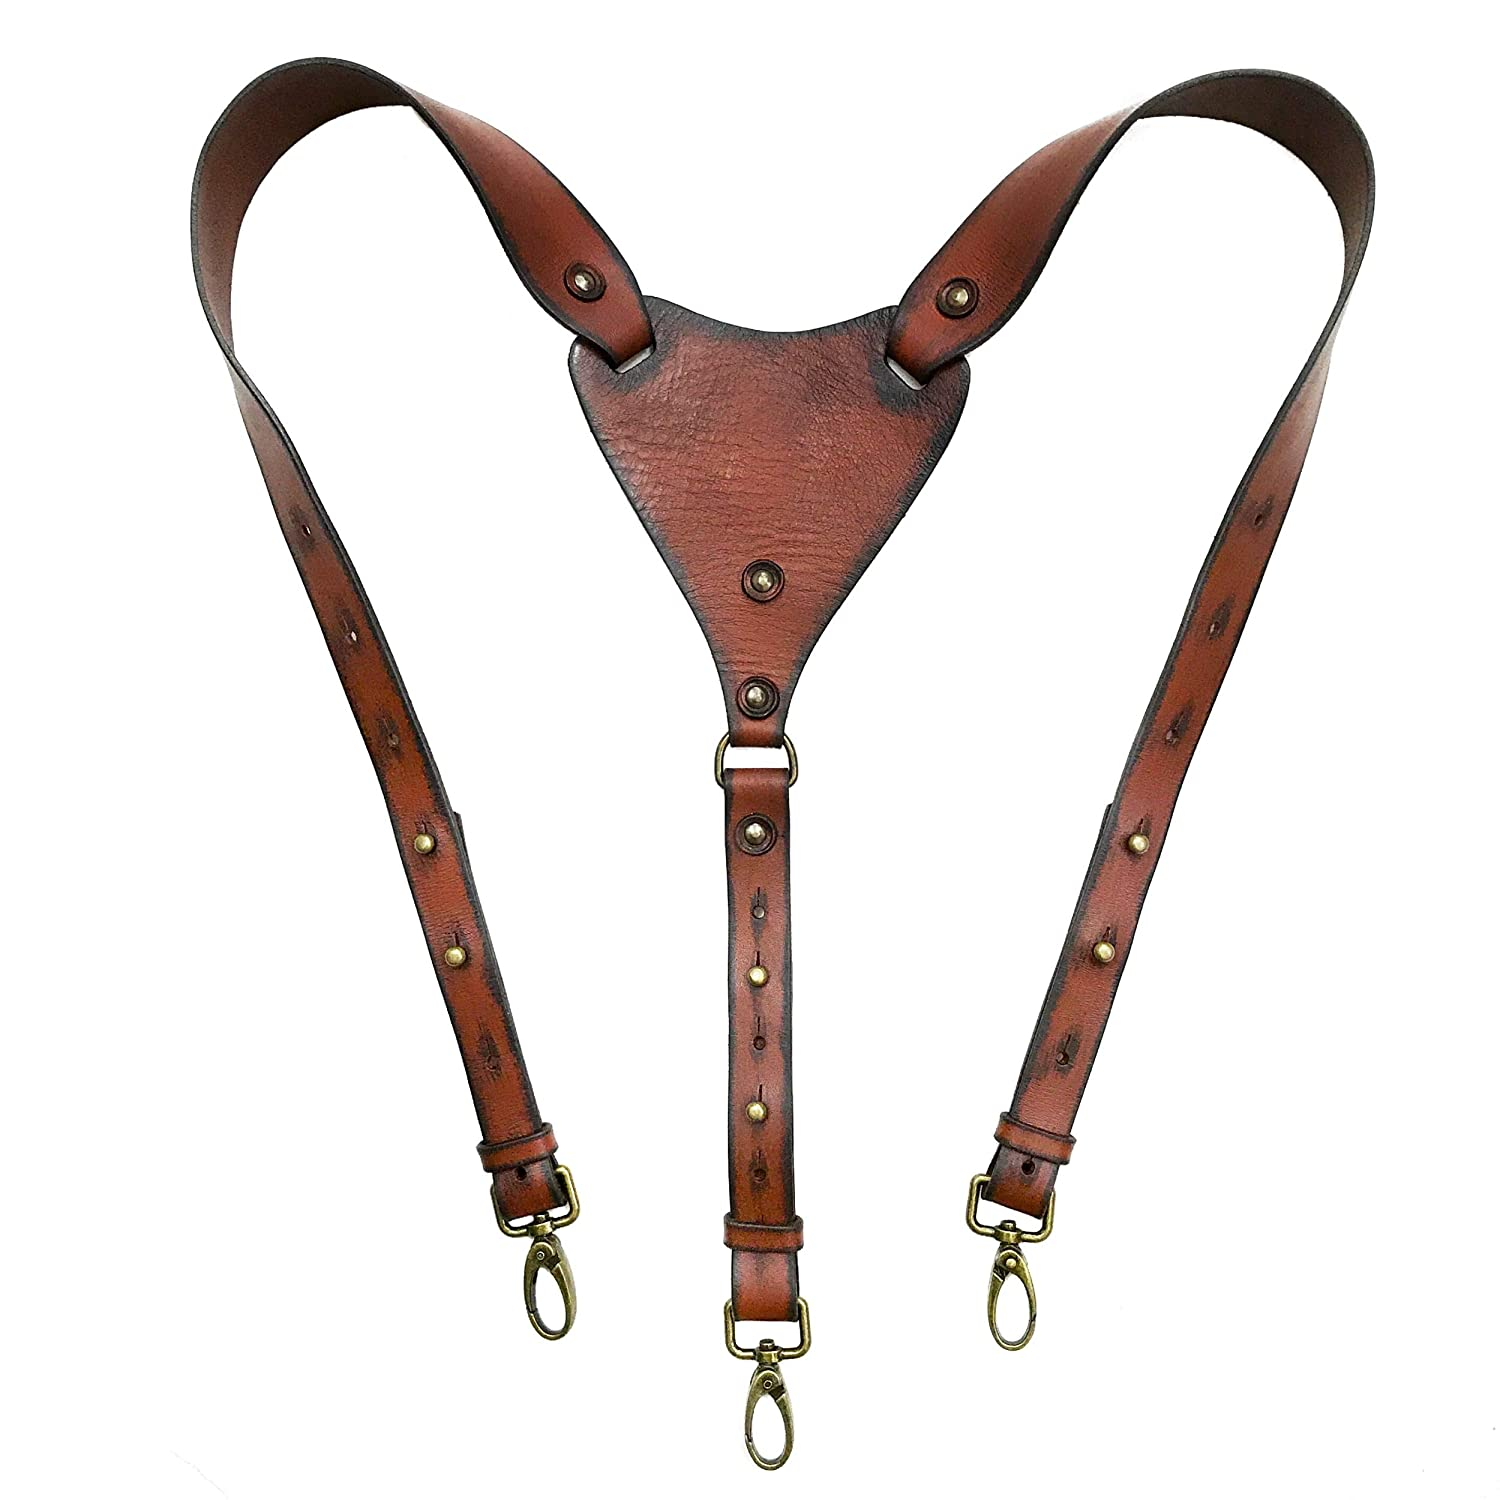 Brown Leather Suspenders Women Braces Fashion Leather Accessories for Women Custom Made to Your Size